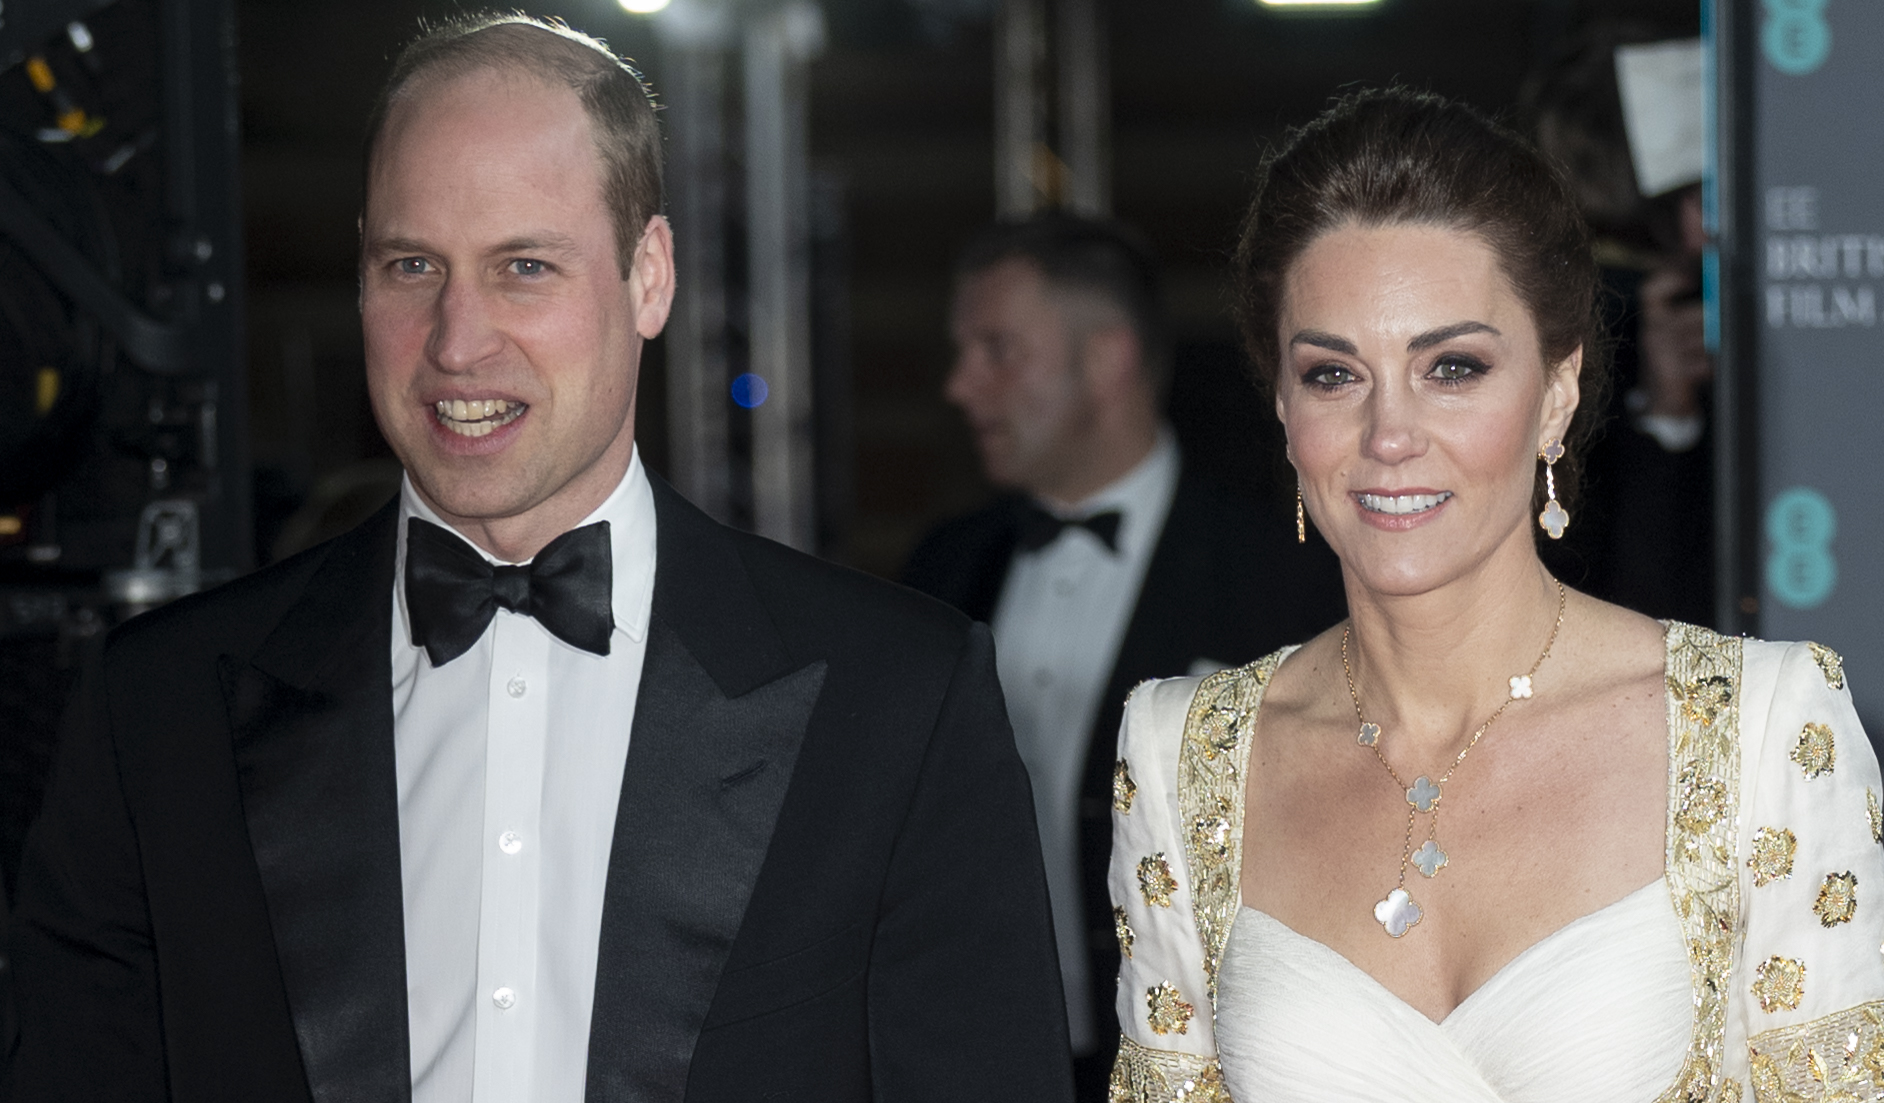 """Prince William Was Called """"Beautiful"""" — His Reaction is The Sweetest Thing You'll See Today - Woman's World"""